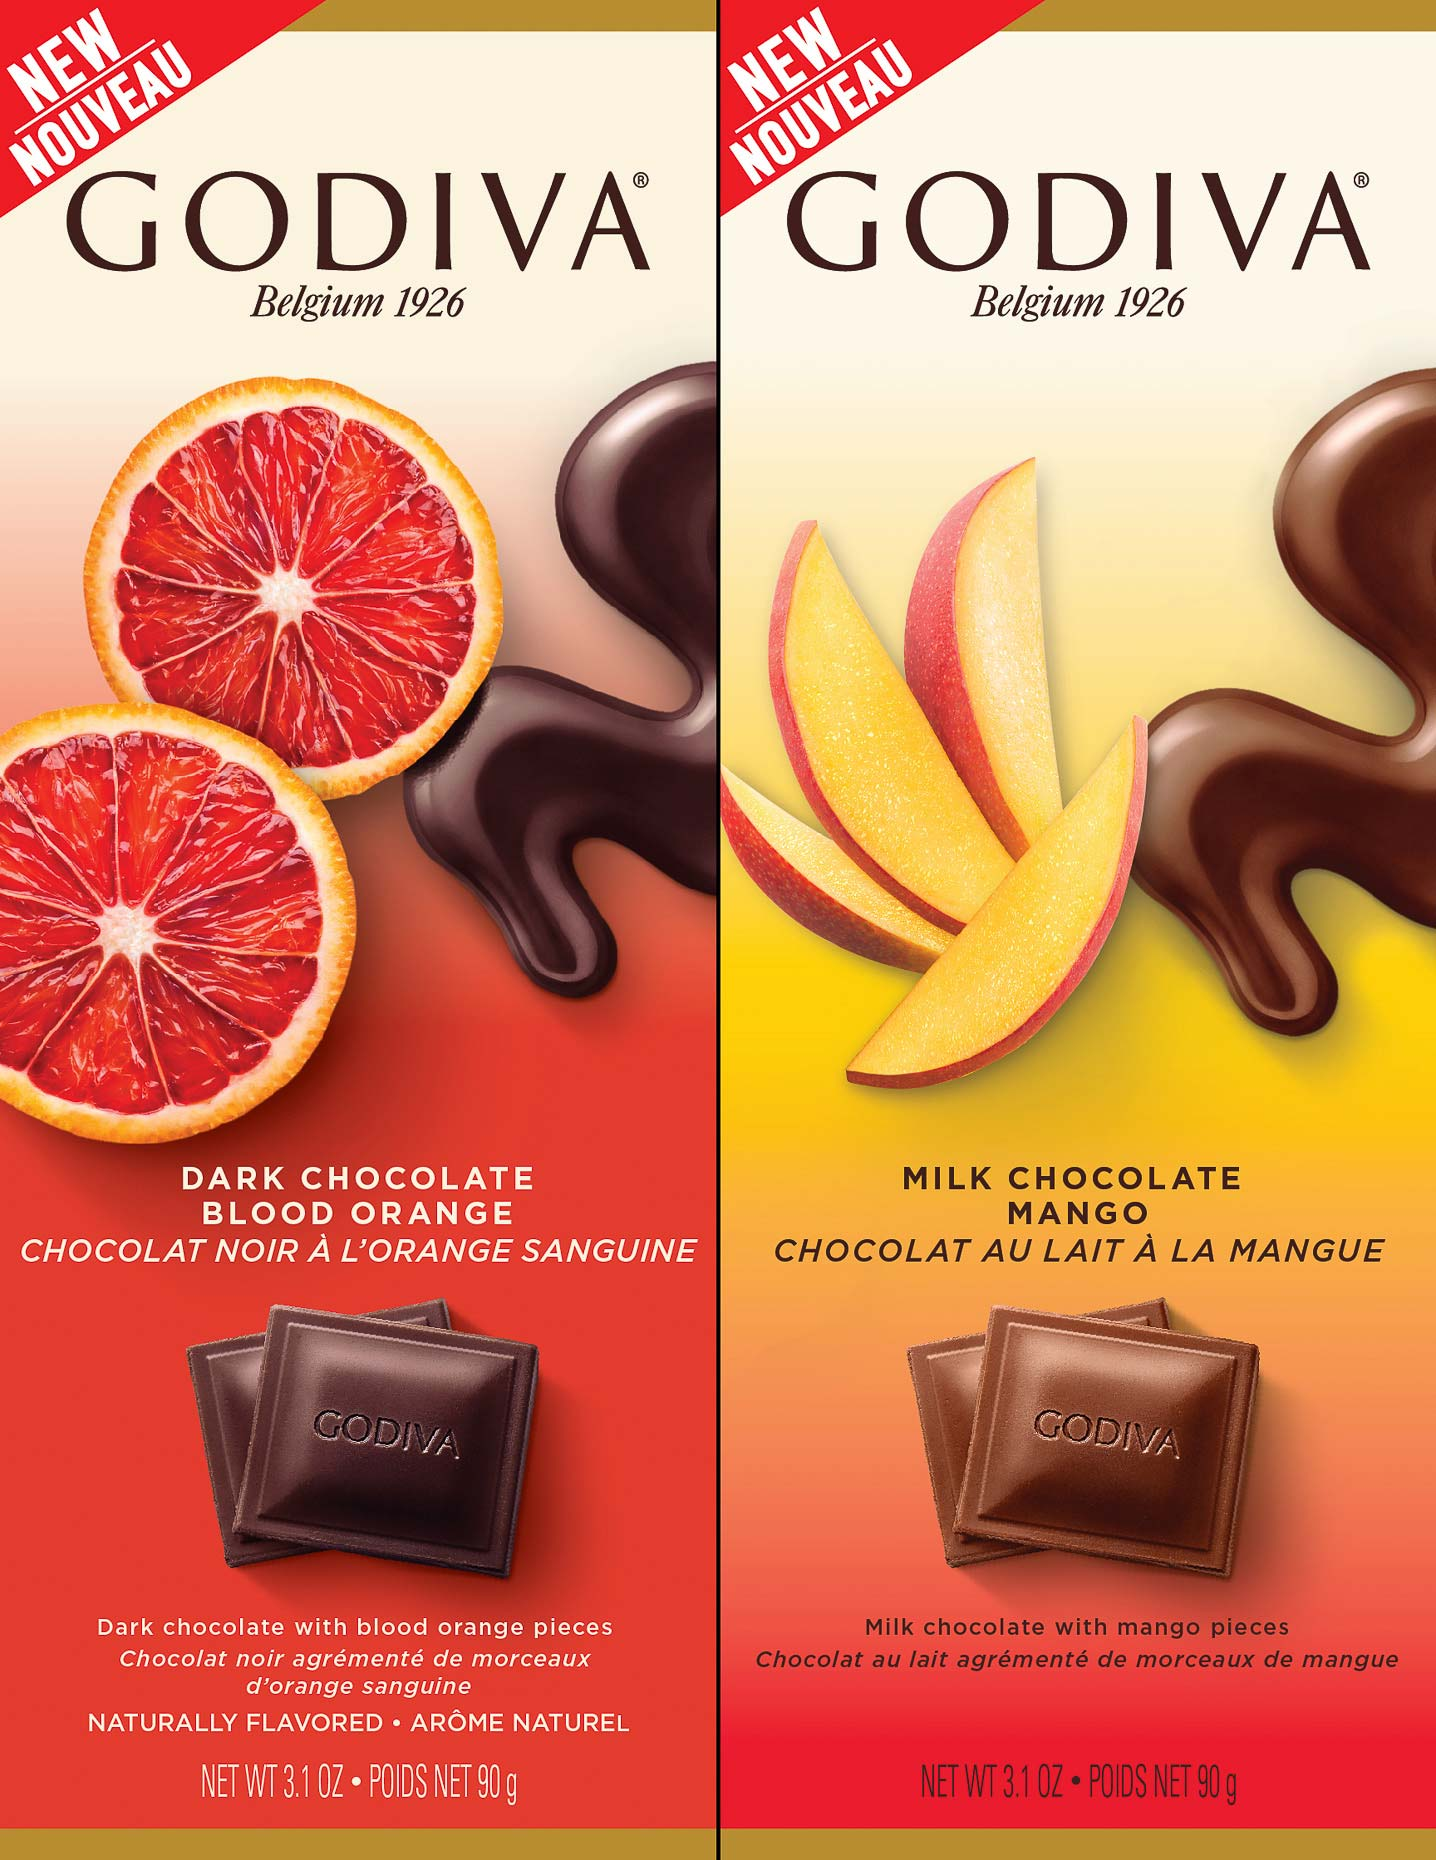 GODIVA_Core_90g_Tablets_BOrange_BI_US_65028_v3-01_db